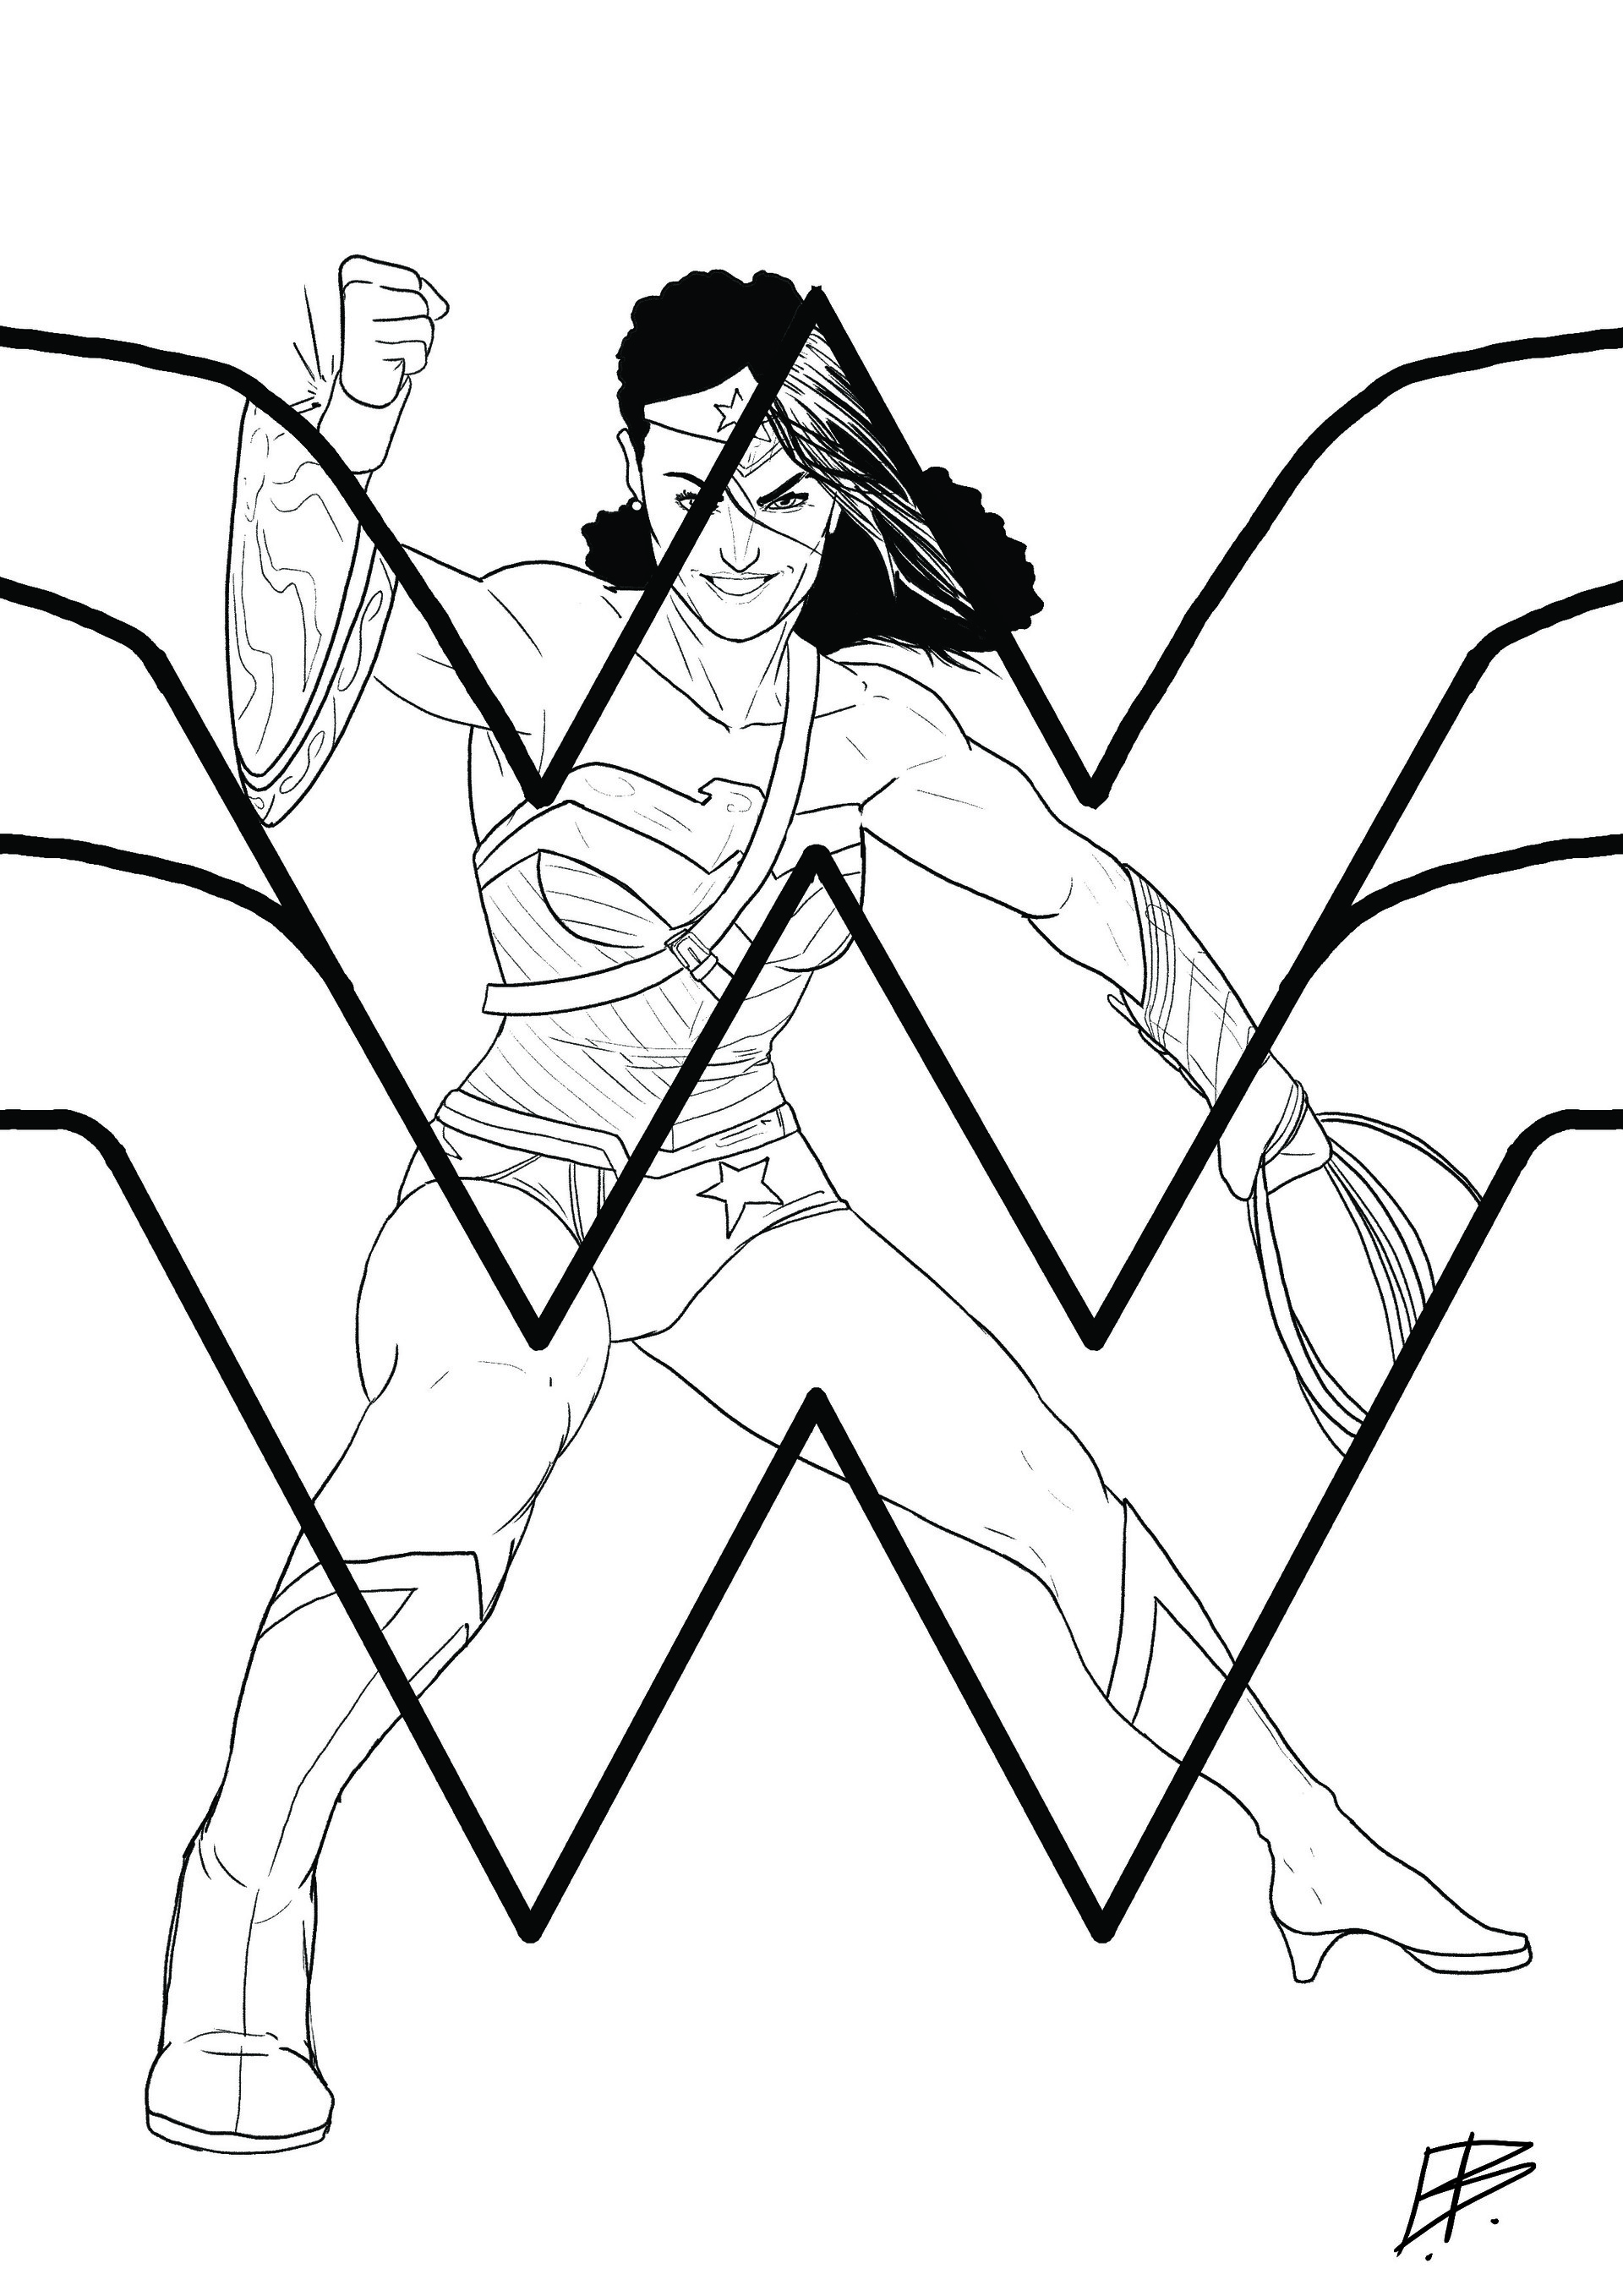 Elliot balson wonder woman 75th inks